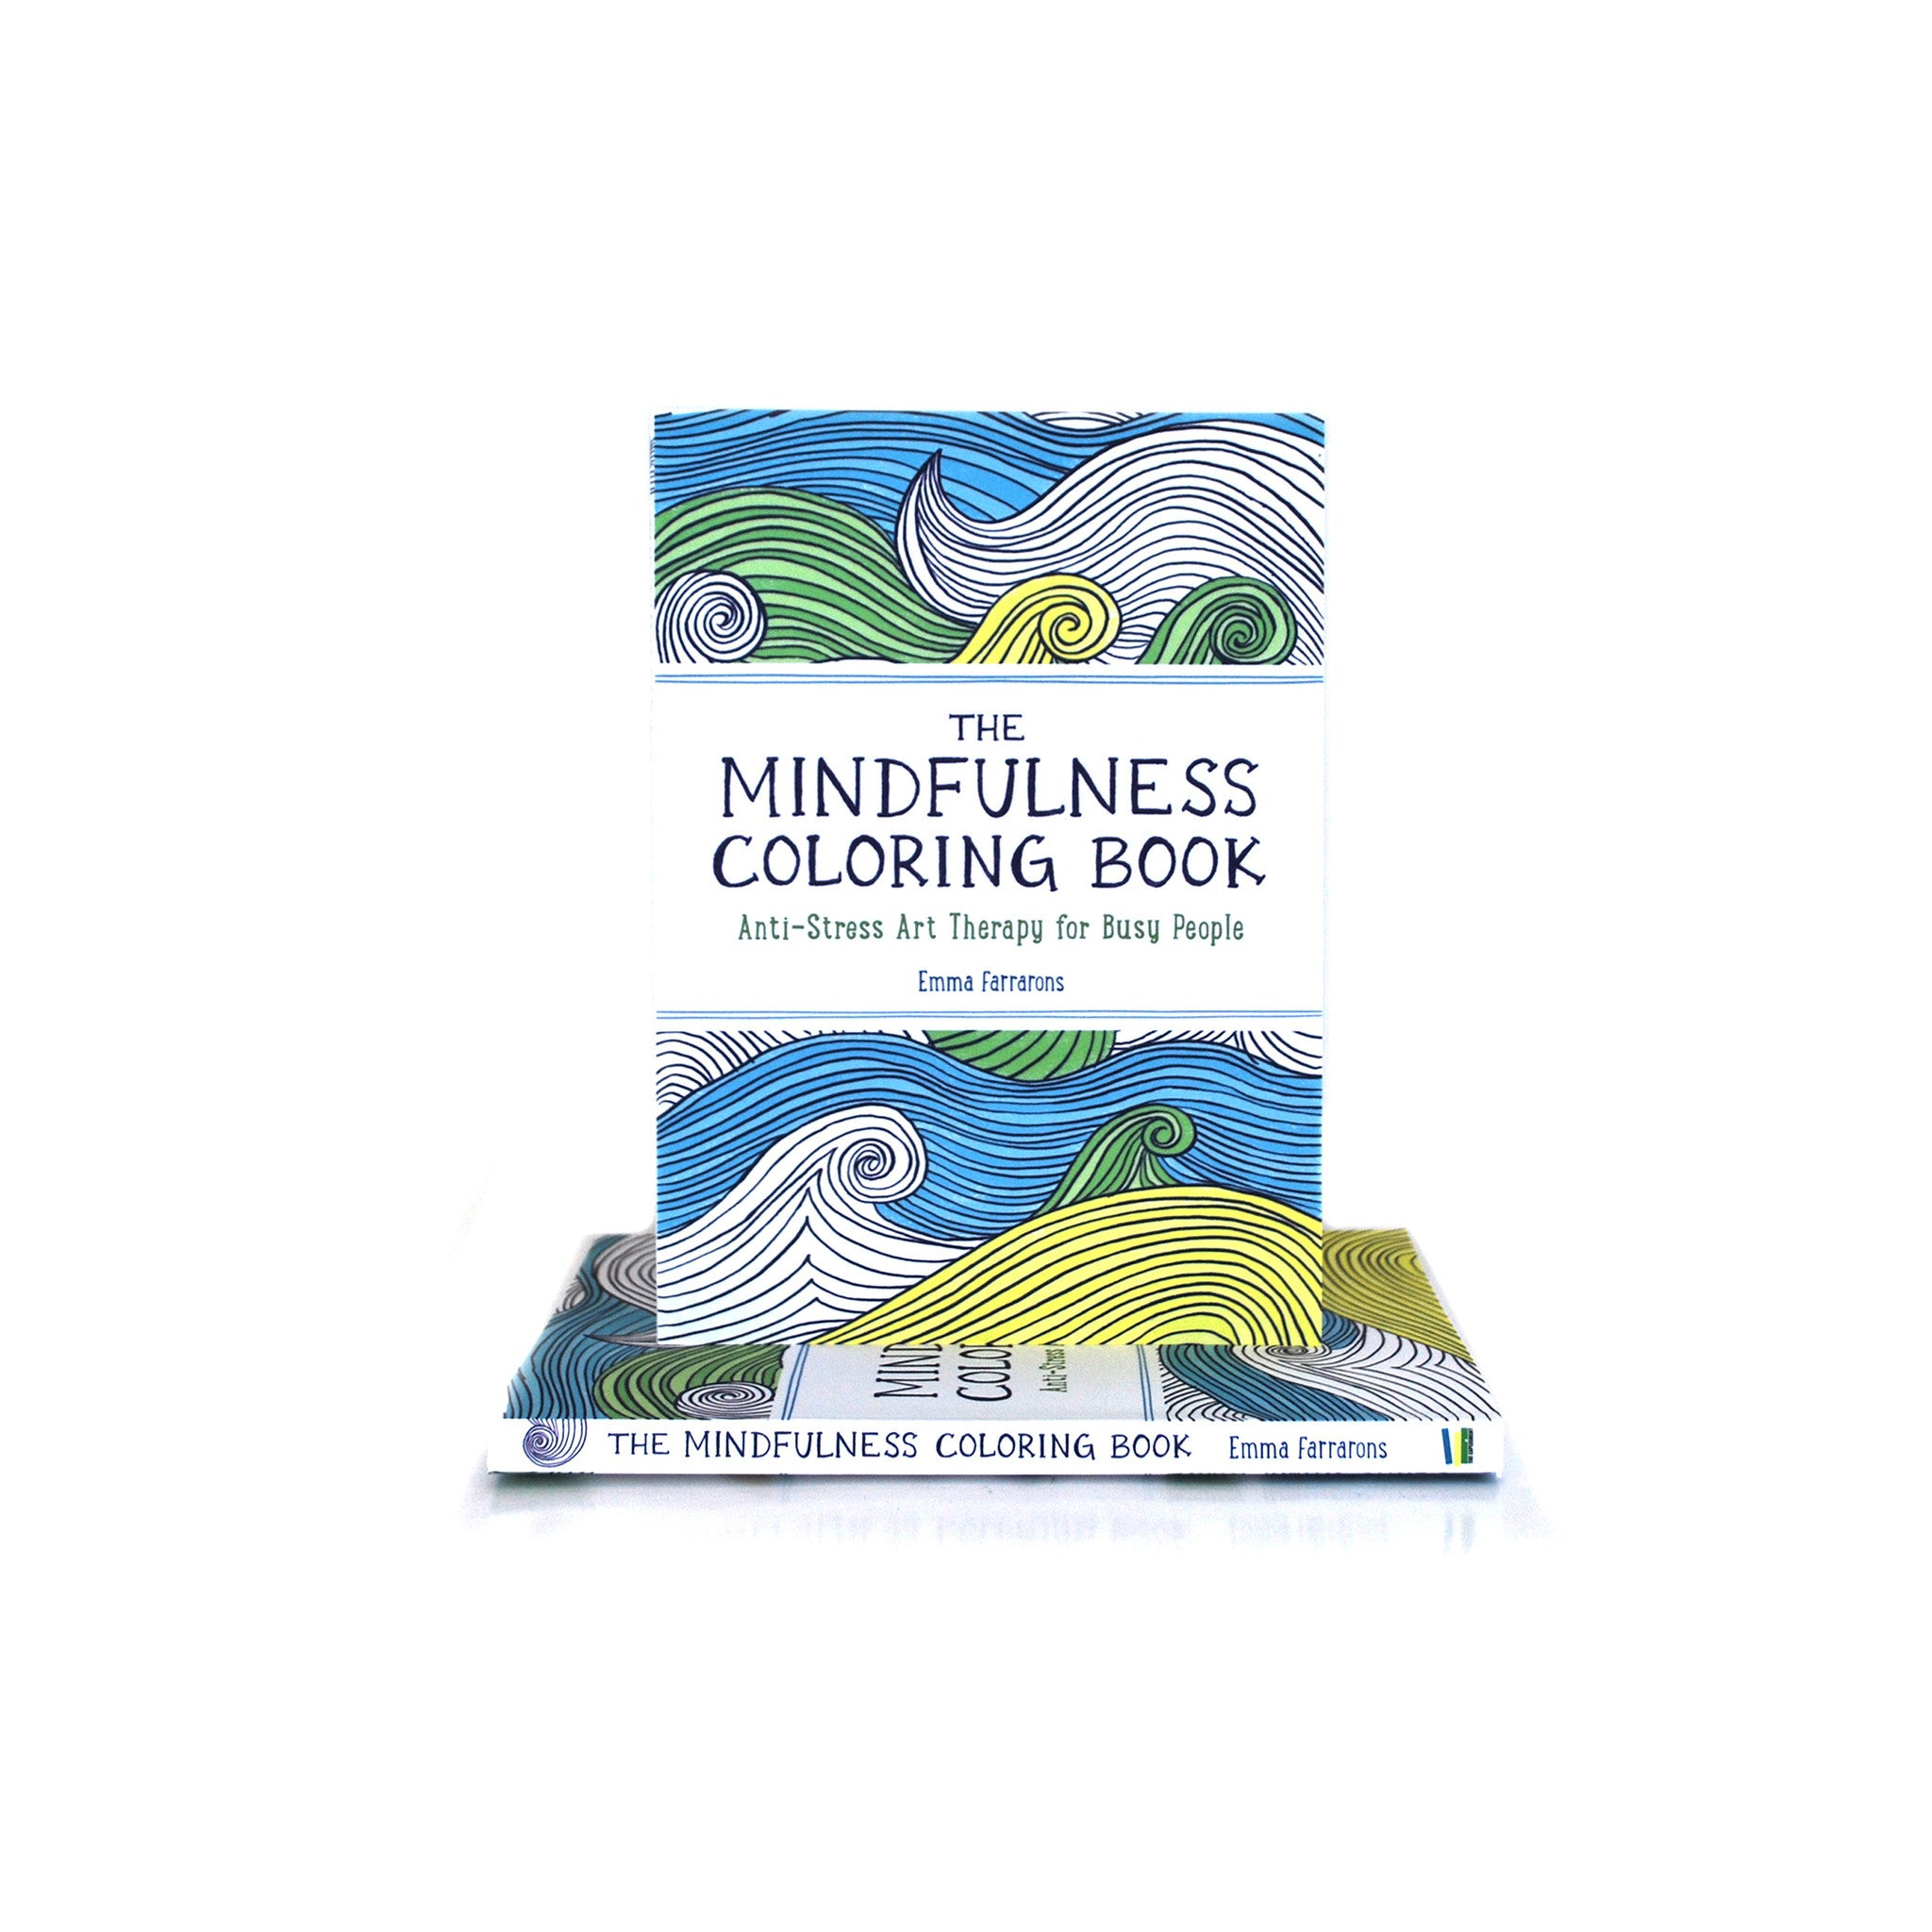 Do anti stress colouring books work - The Mindfulness Coloring Book Anti Stress Art Therapy For Busy People